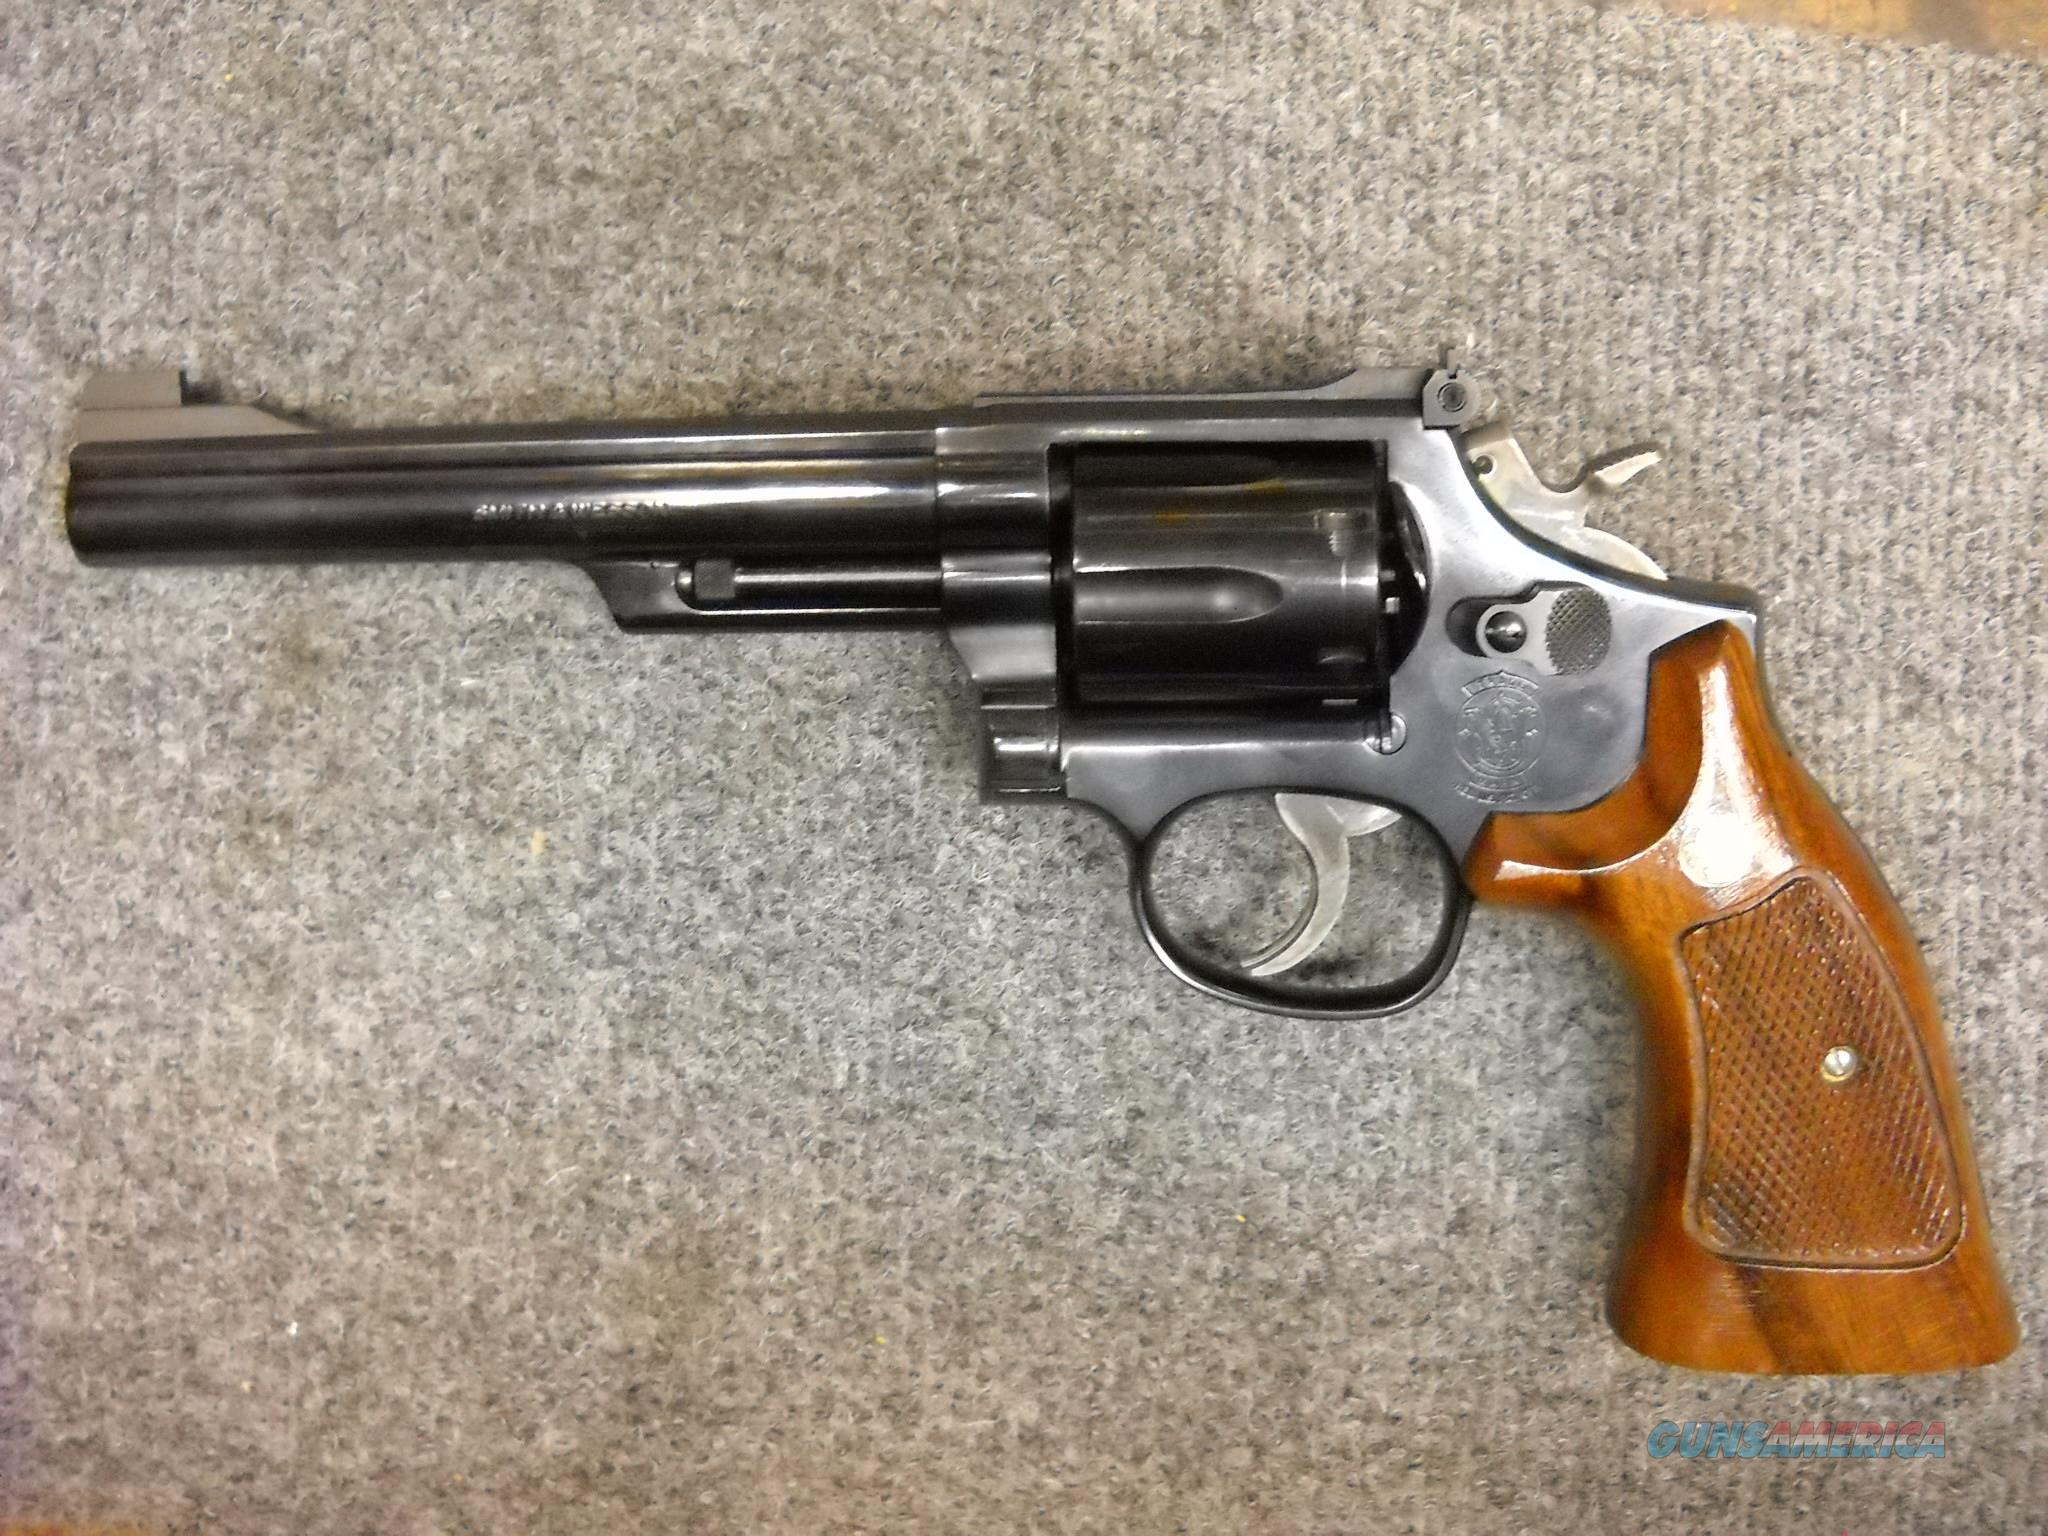 Smith&Wesson Model 19-5 .357 mag 99%  Guns > Pistols > Smith & Wesson Revolvers > Full Frame Revolver